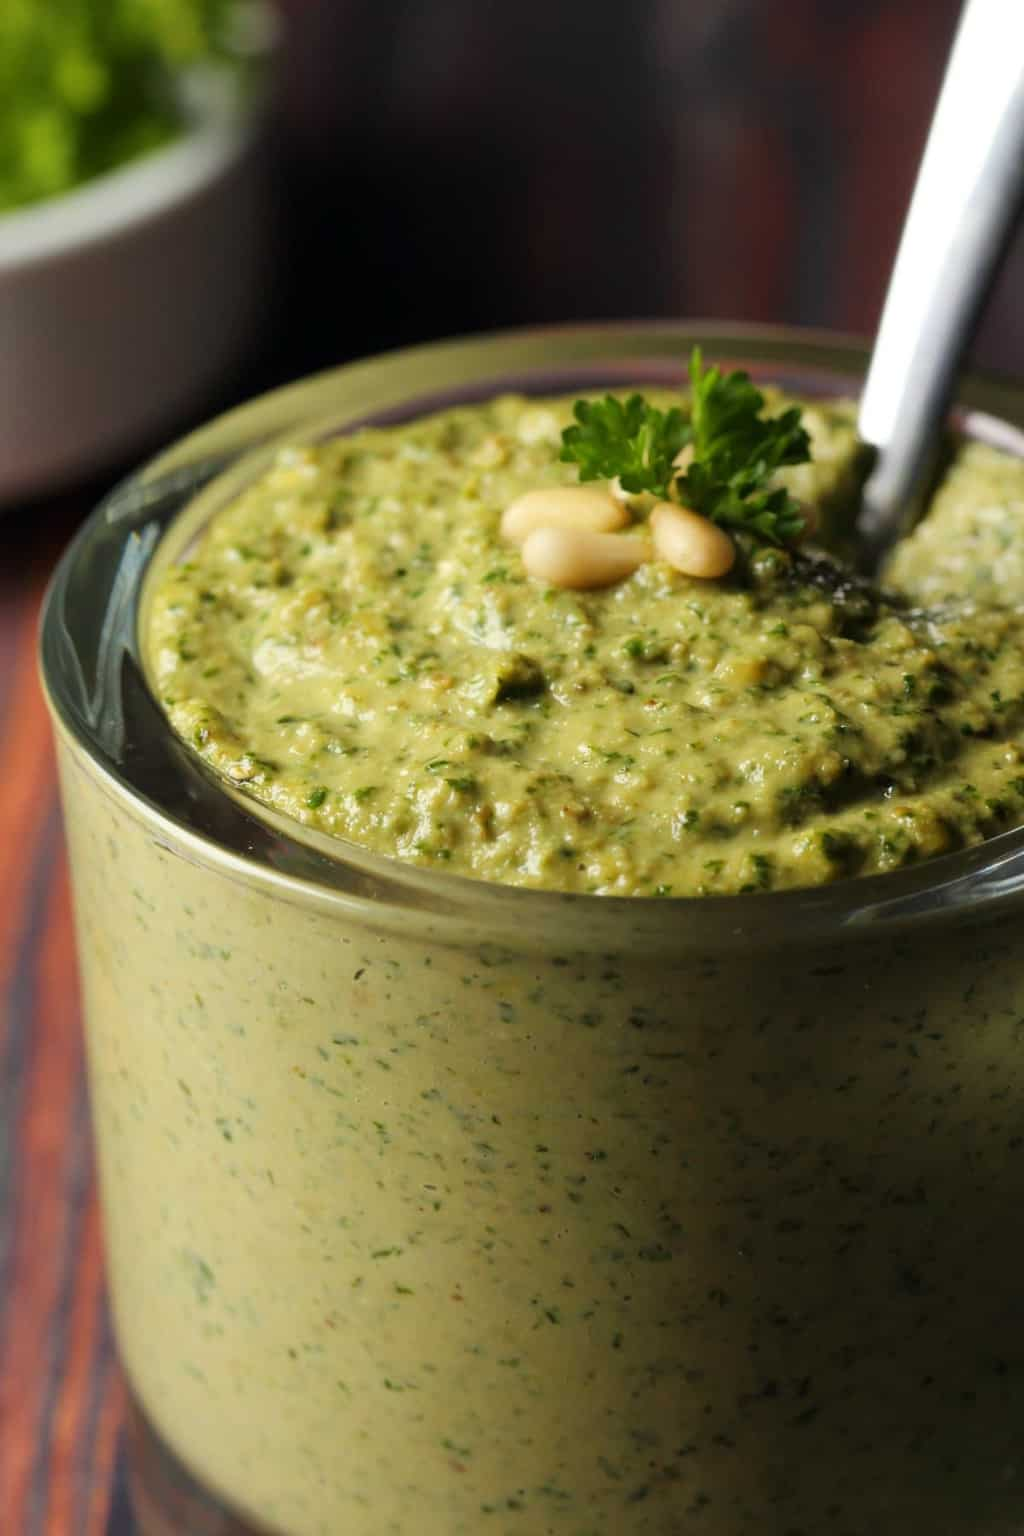 Vegan pesto in a glass jar with a spoon.